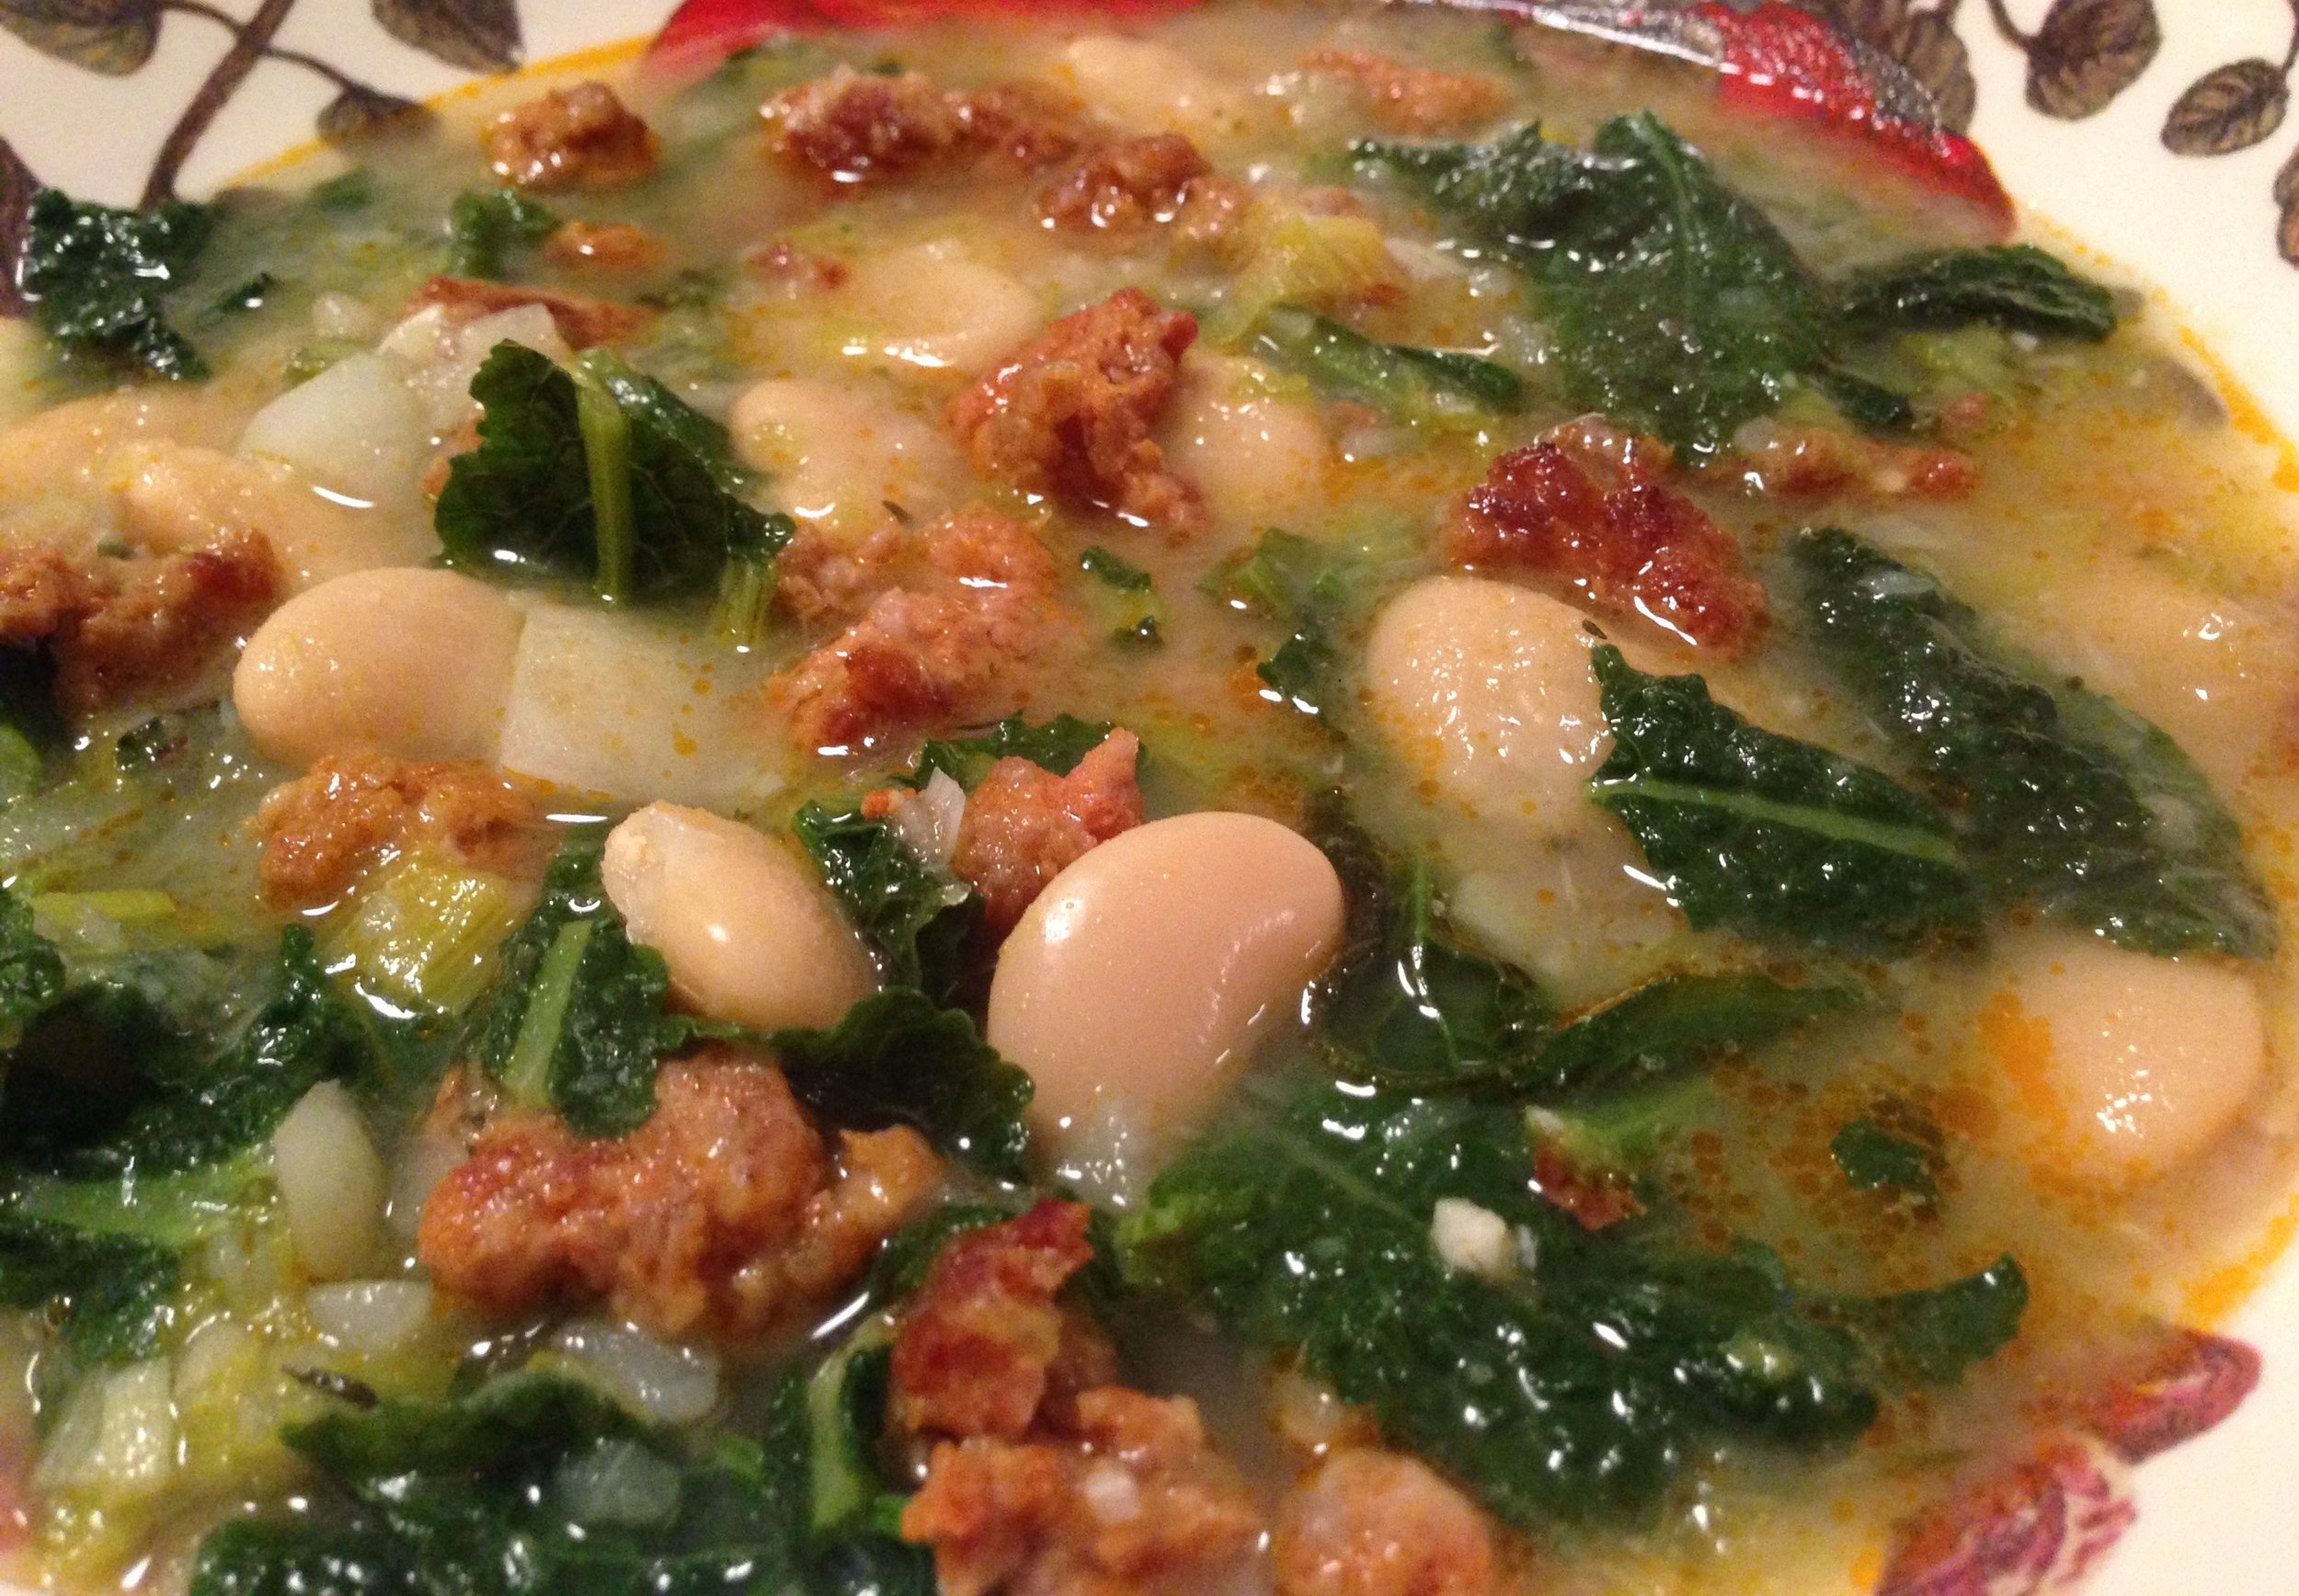 Warm and cozy Potato, Kale, and Bean Soup with Chorizo.